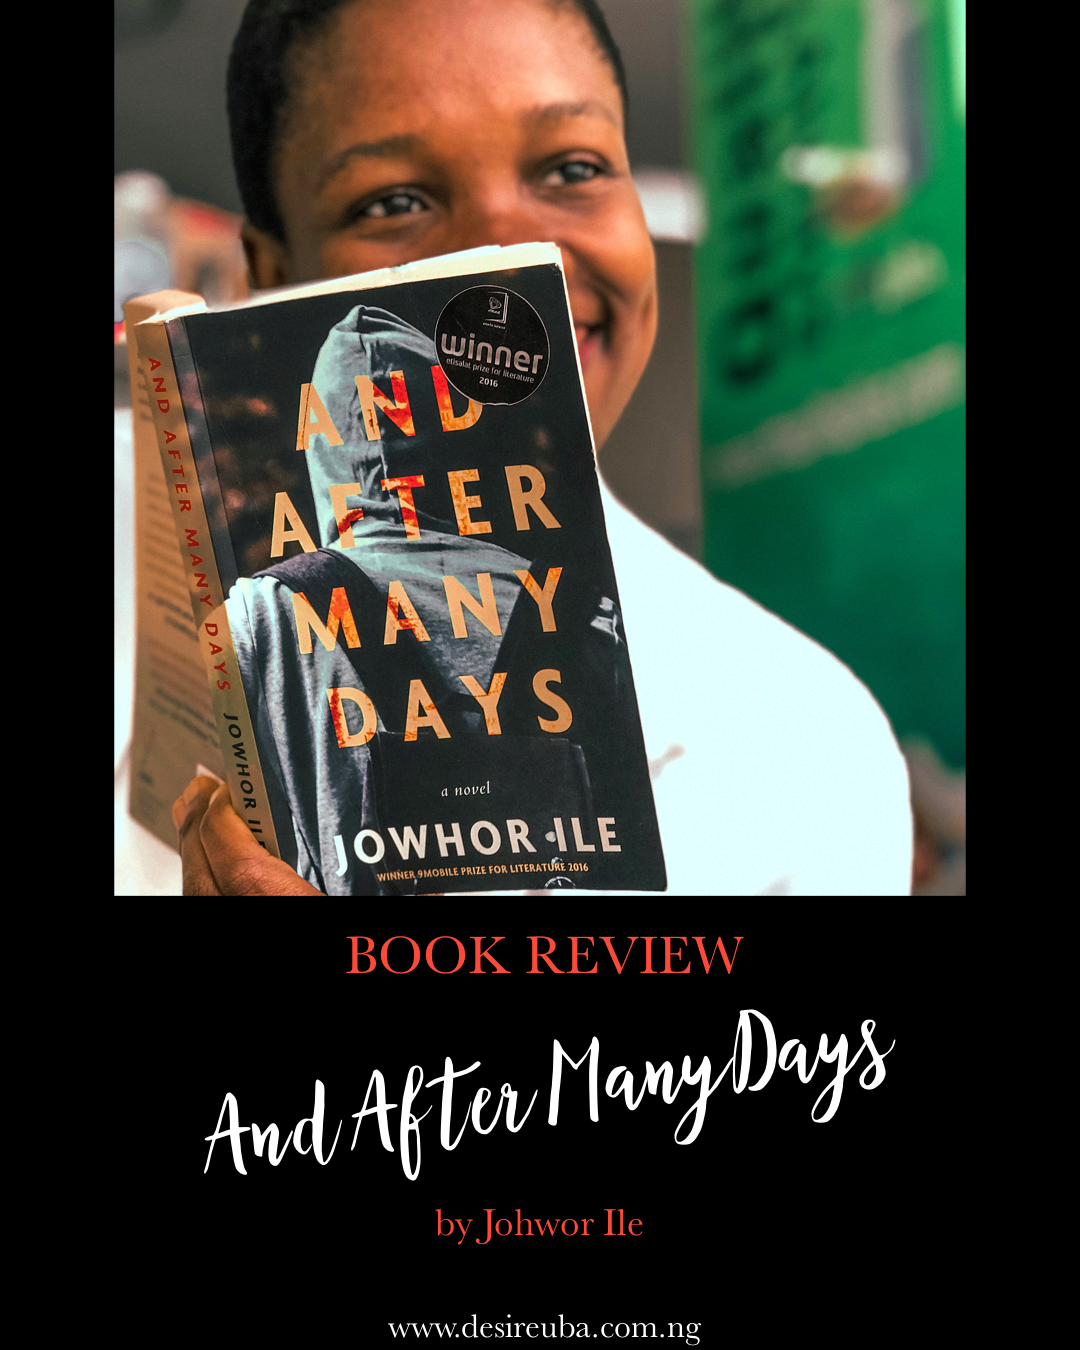 BOOK REVIEW || AND AFTER MANY DAYS BY JOHWOR ILE